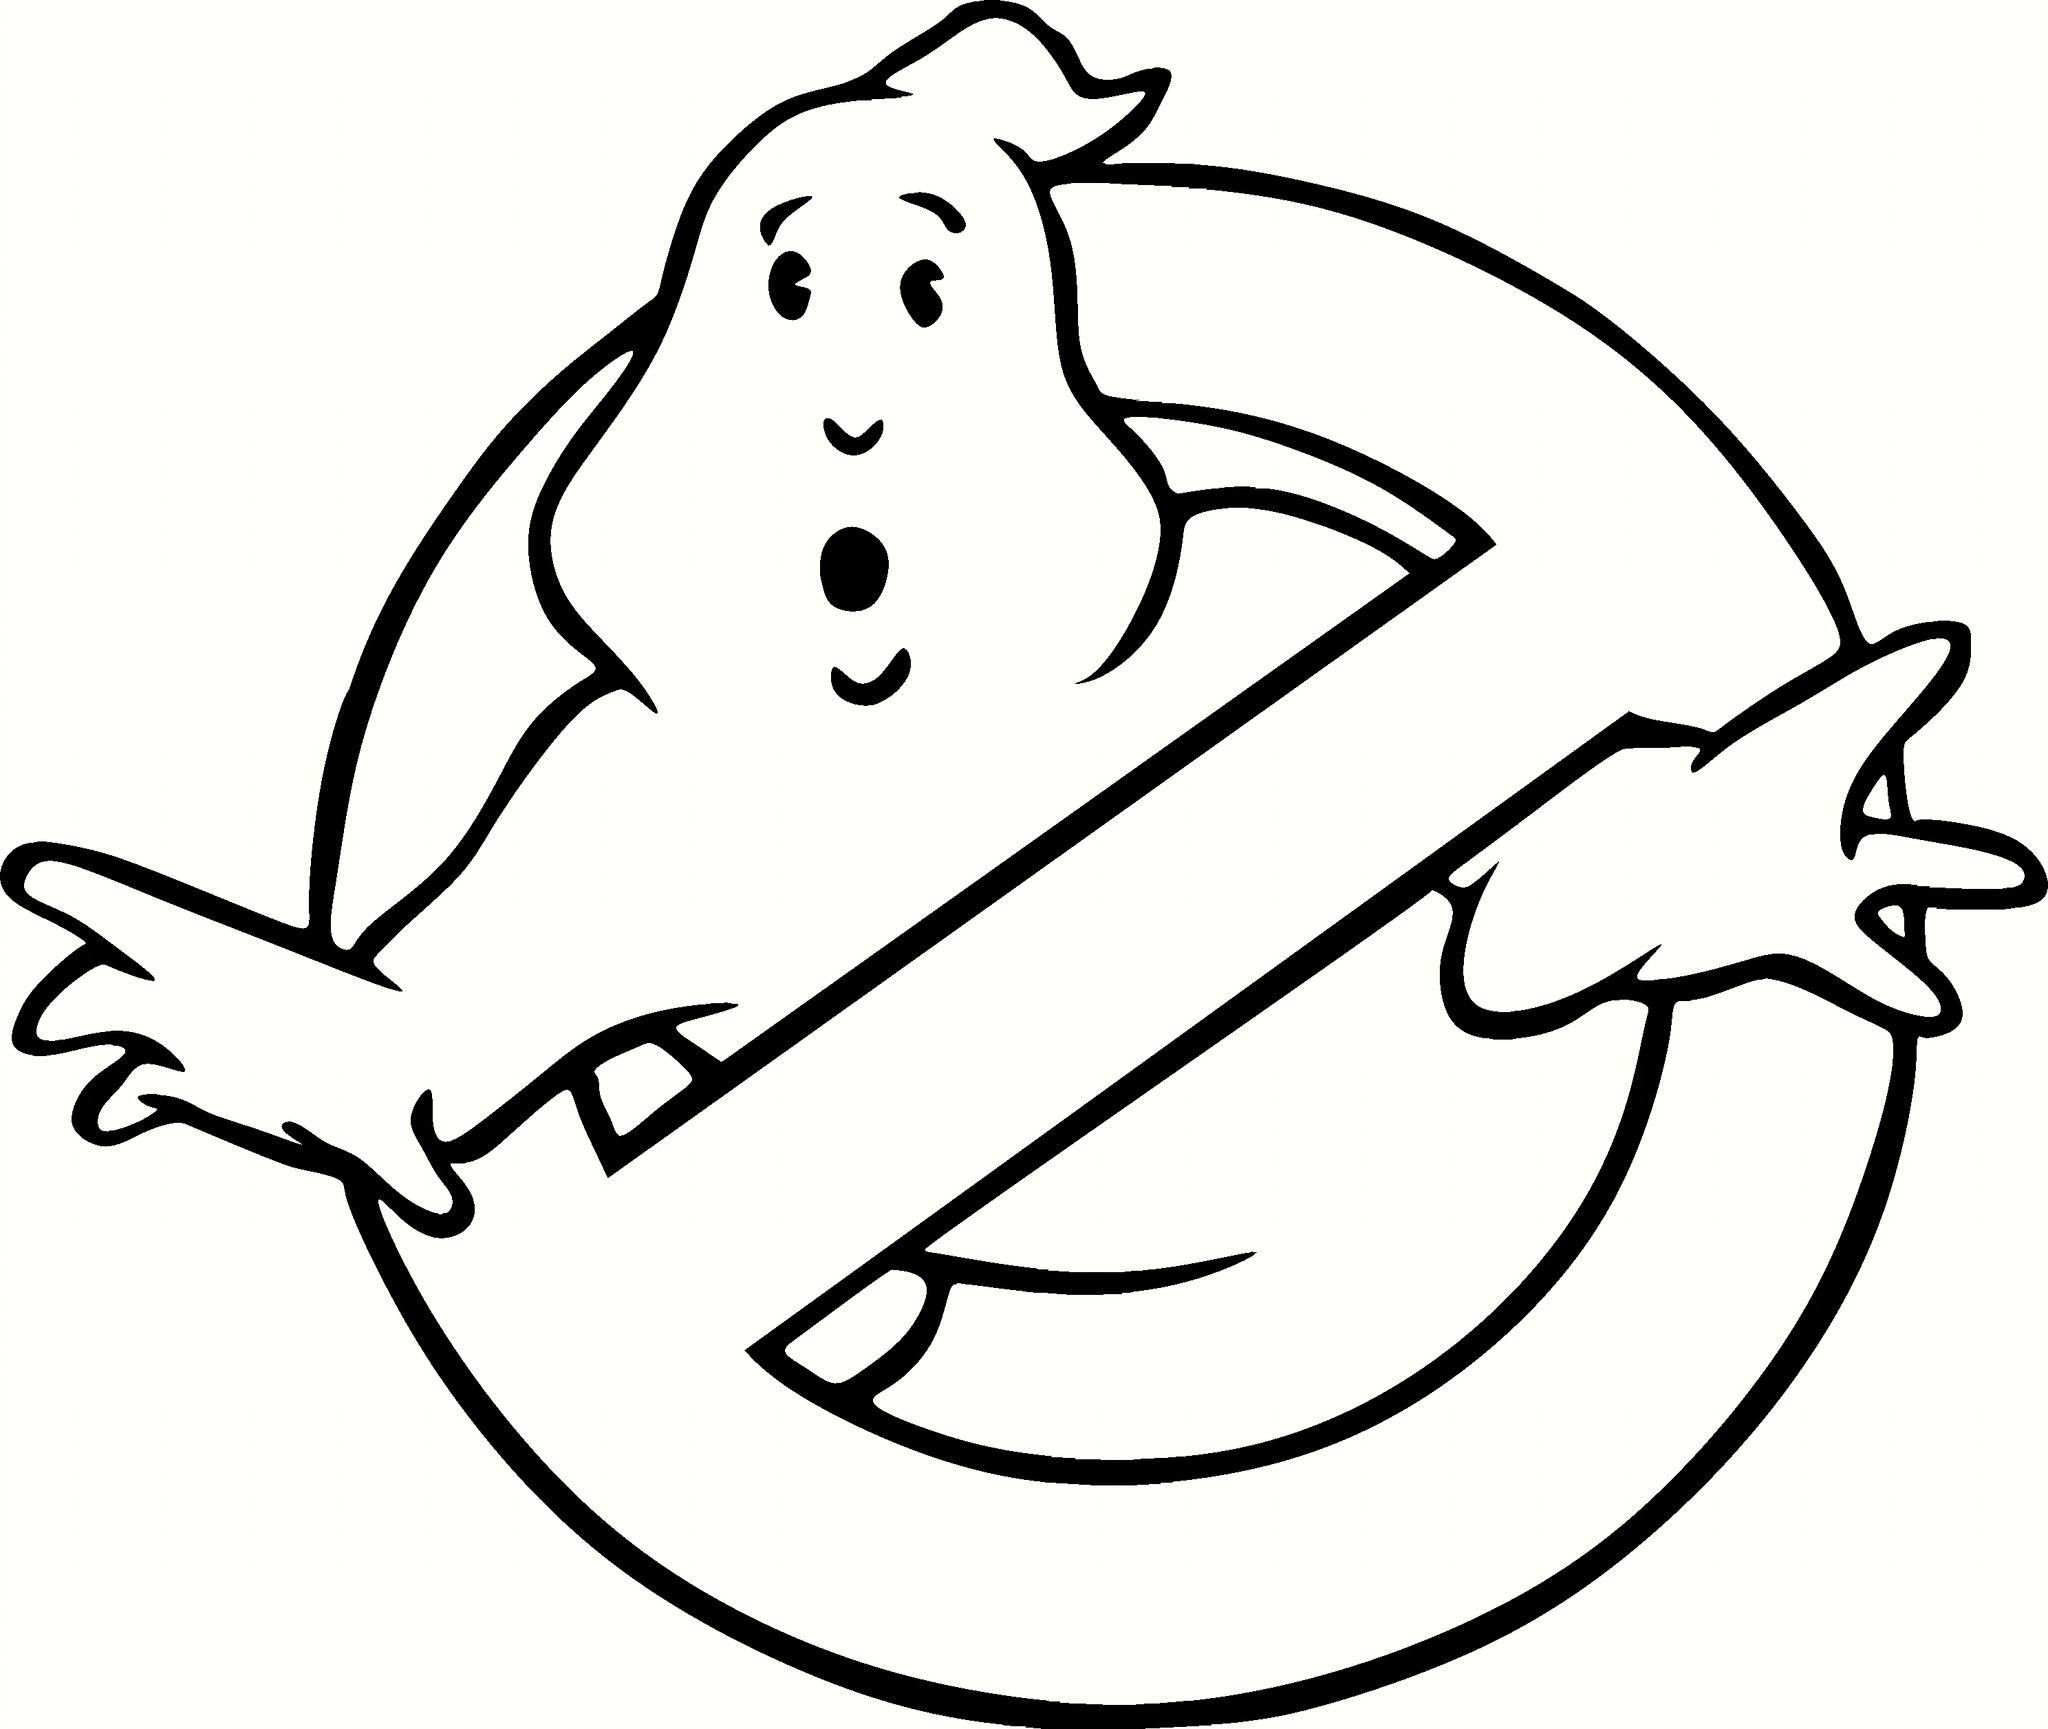 Ghost busters logo vinyl decal graphic choose your color Coloring book vinyl